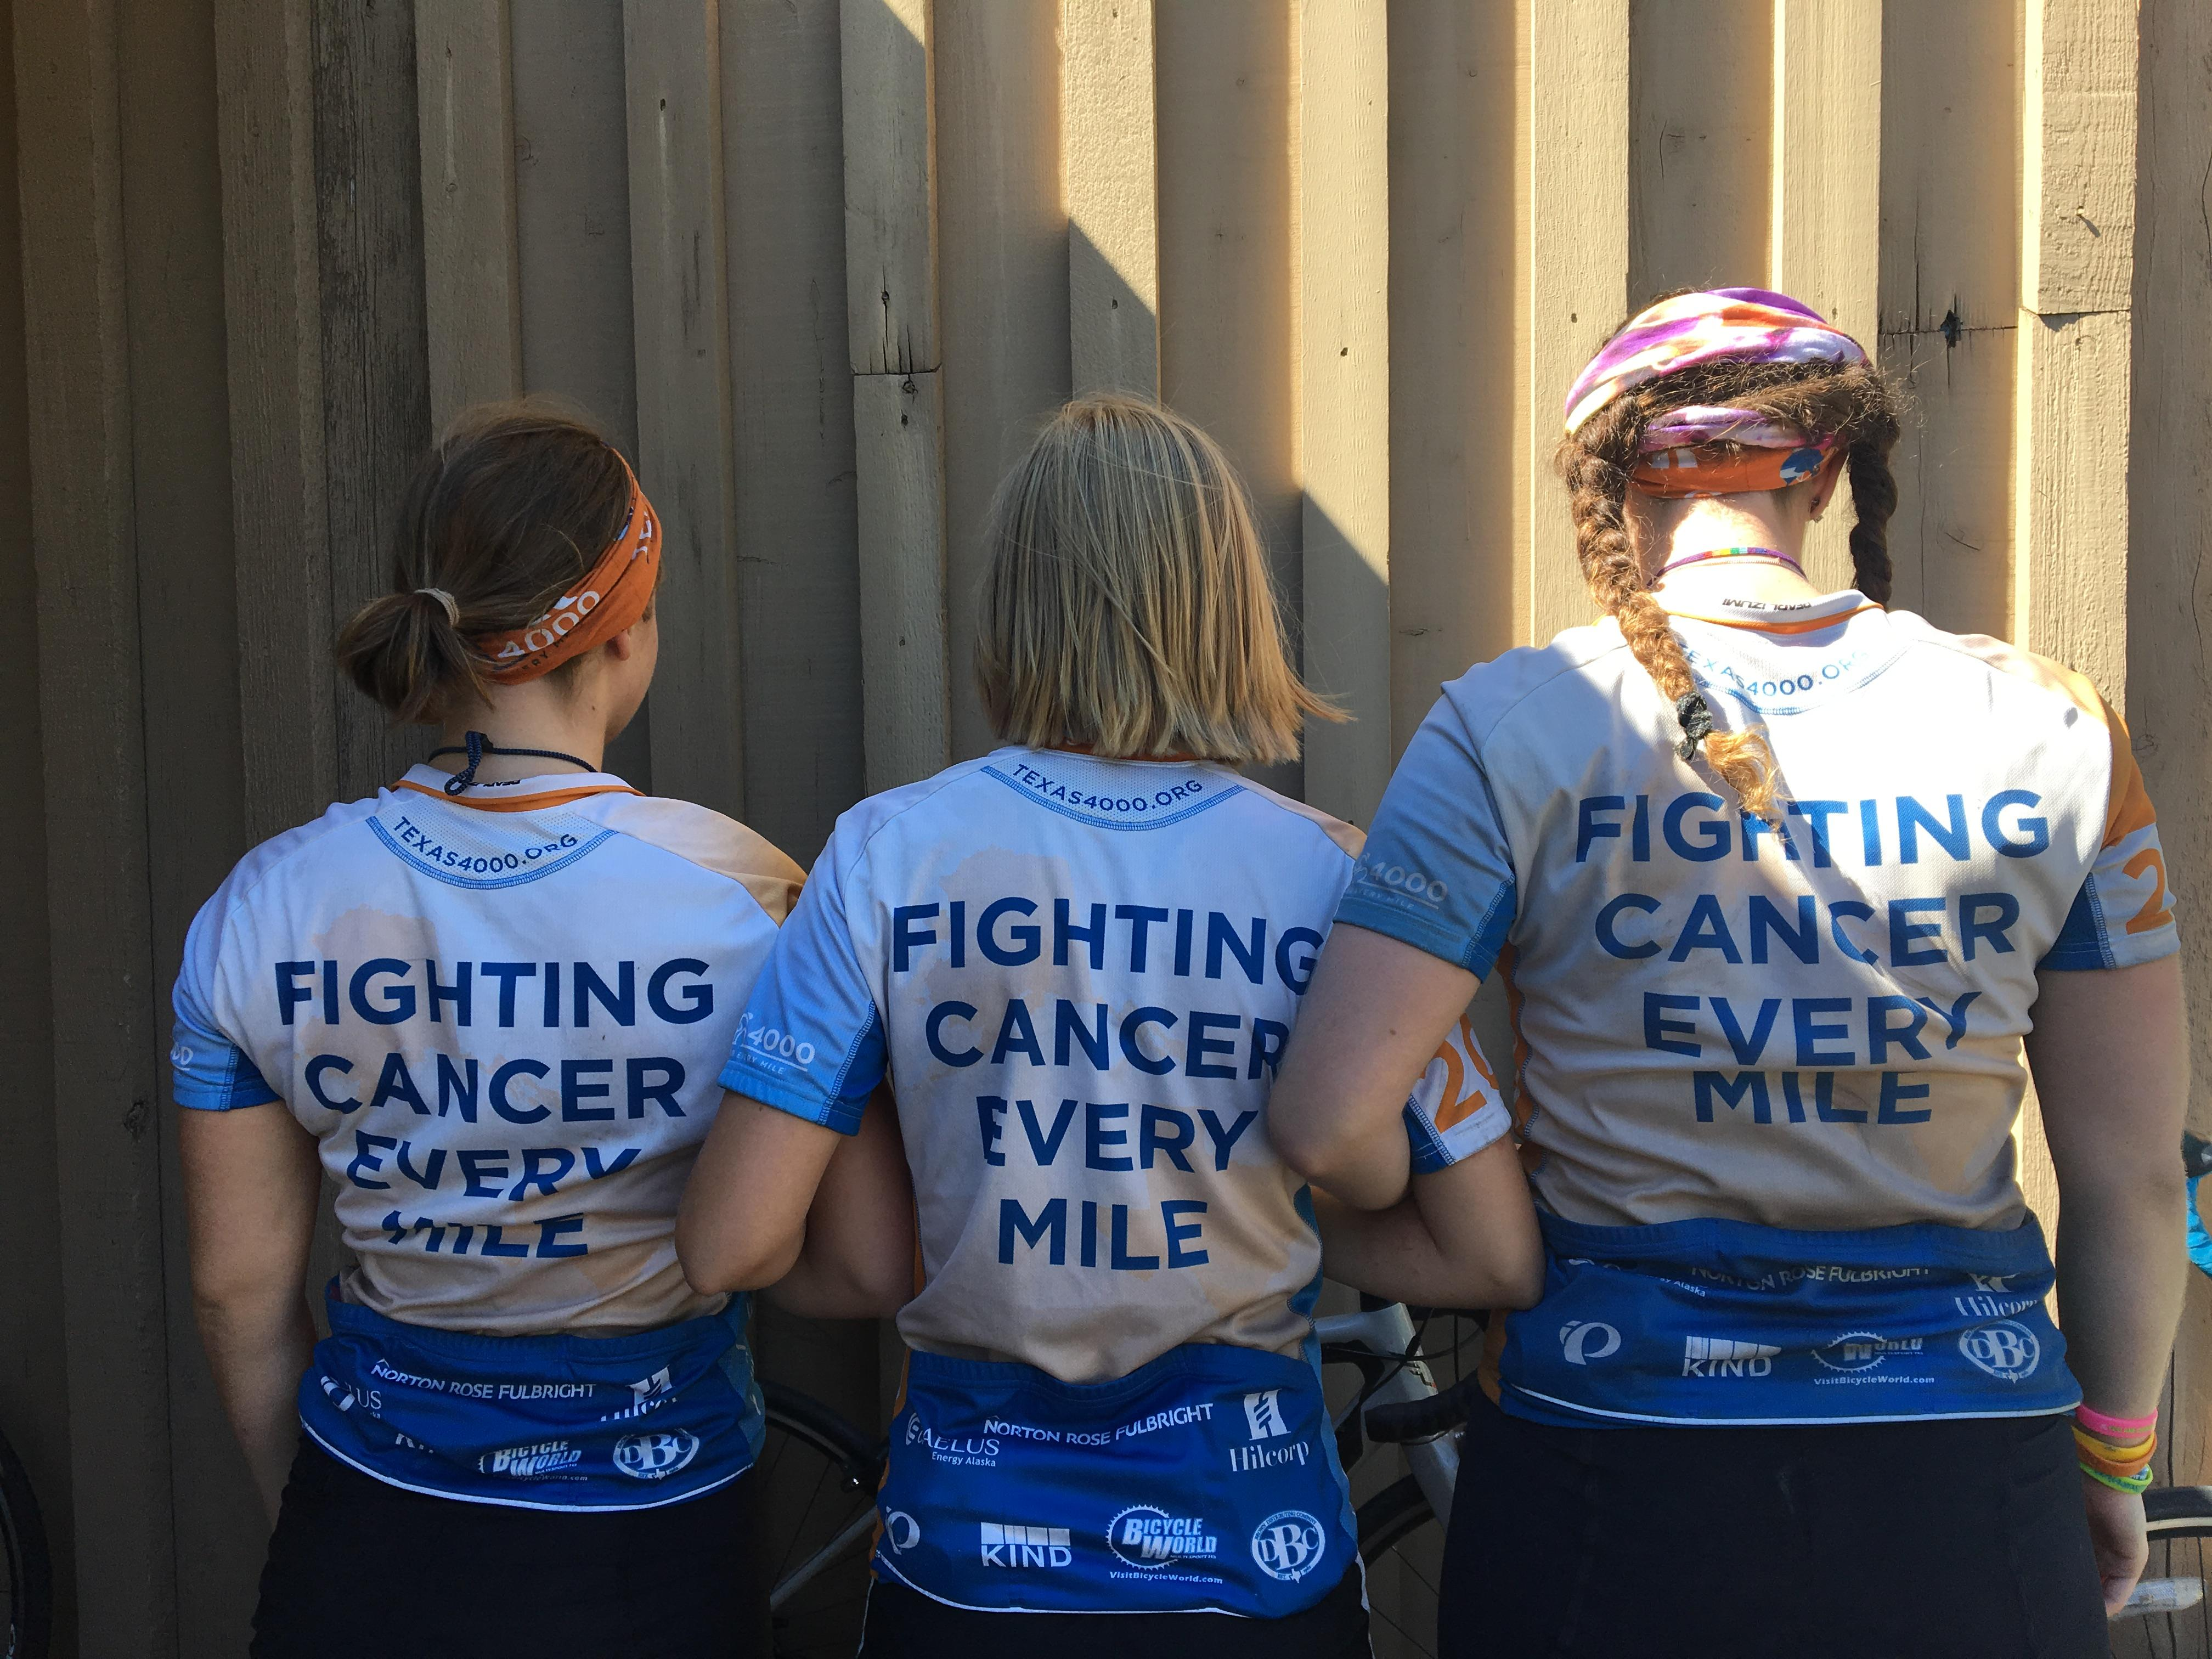 4,000 people from Texas rolled into Coos Bay on bicycles Wednesday with a mission to share hope, knowledge and charity for cancer research. (SBG photo)